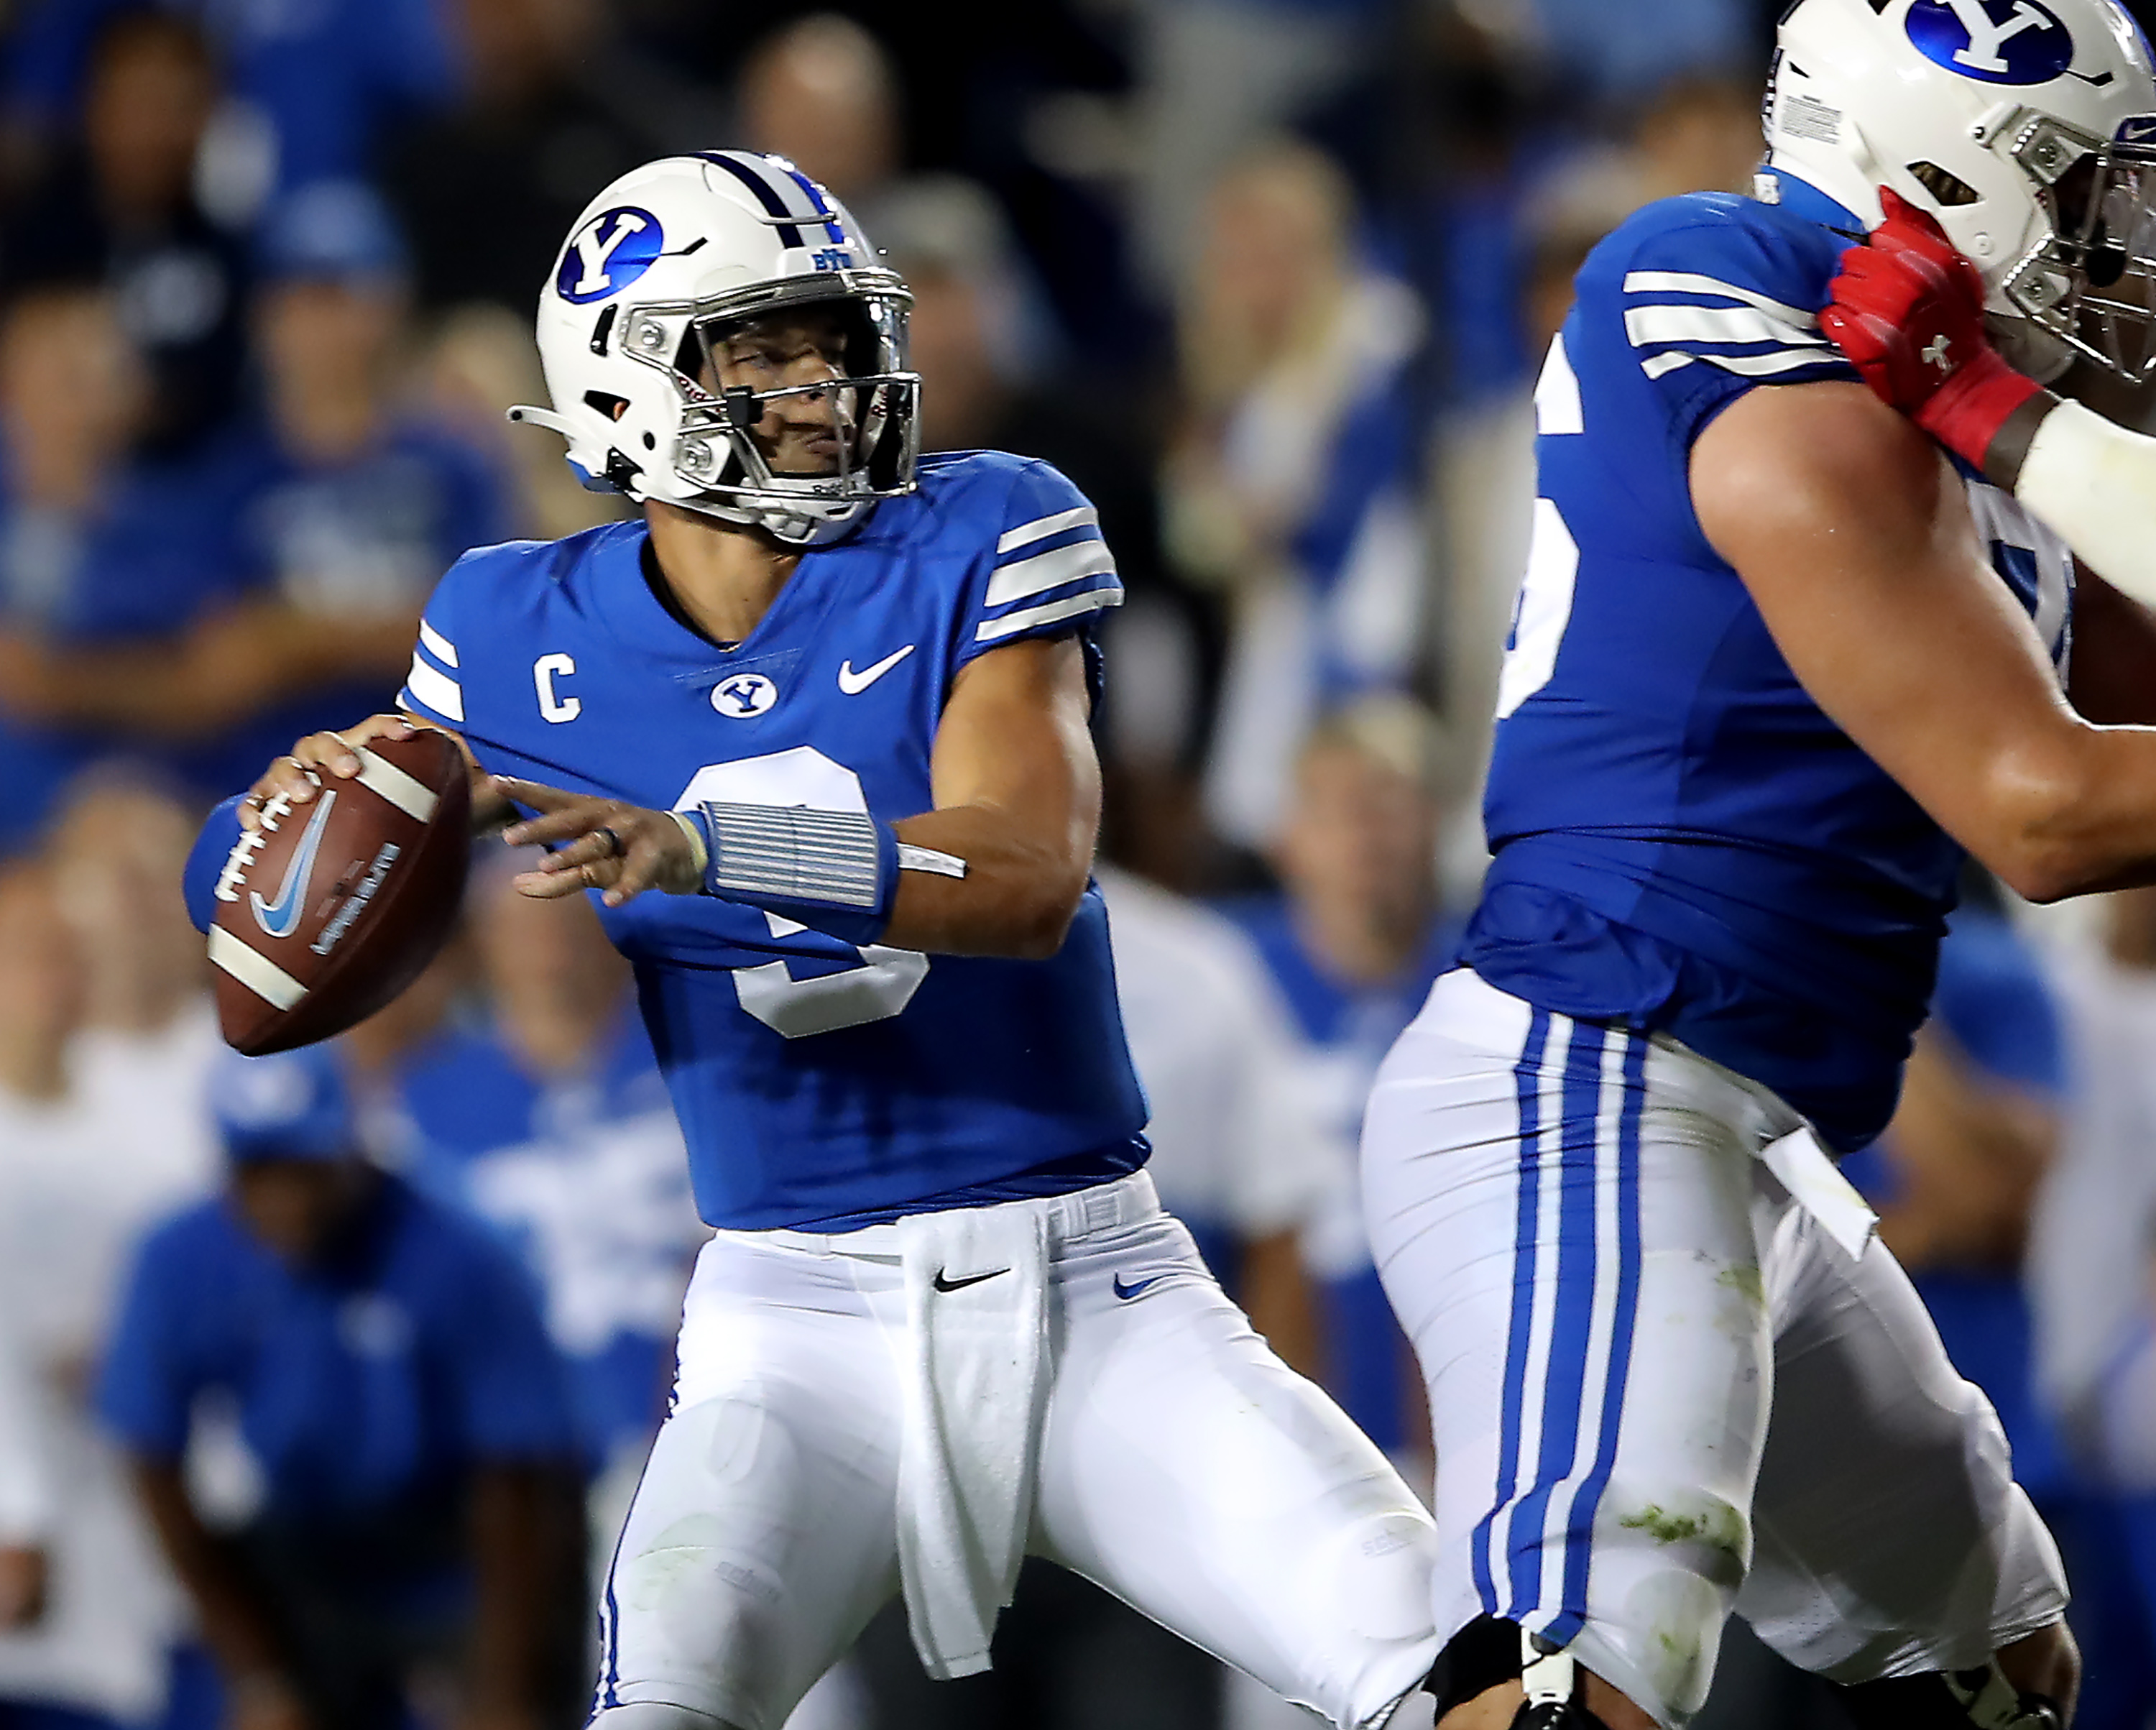 BYU Cougars quarterback Jaren Hall delivers a pass as BYU and Utah play.